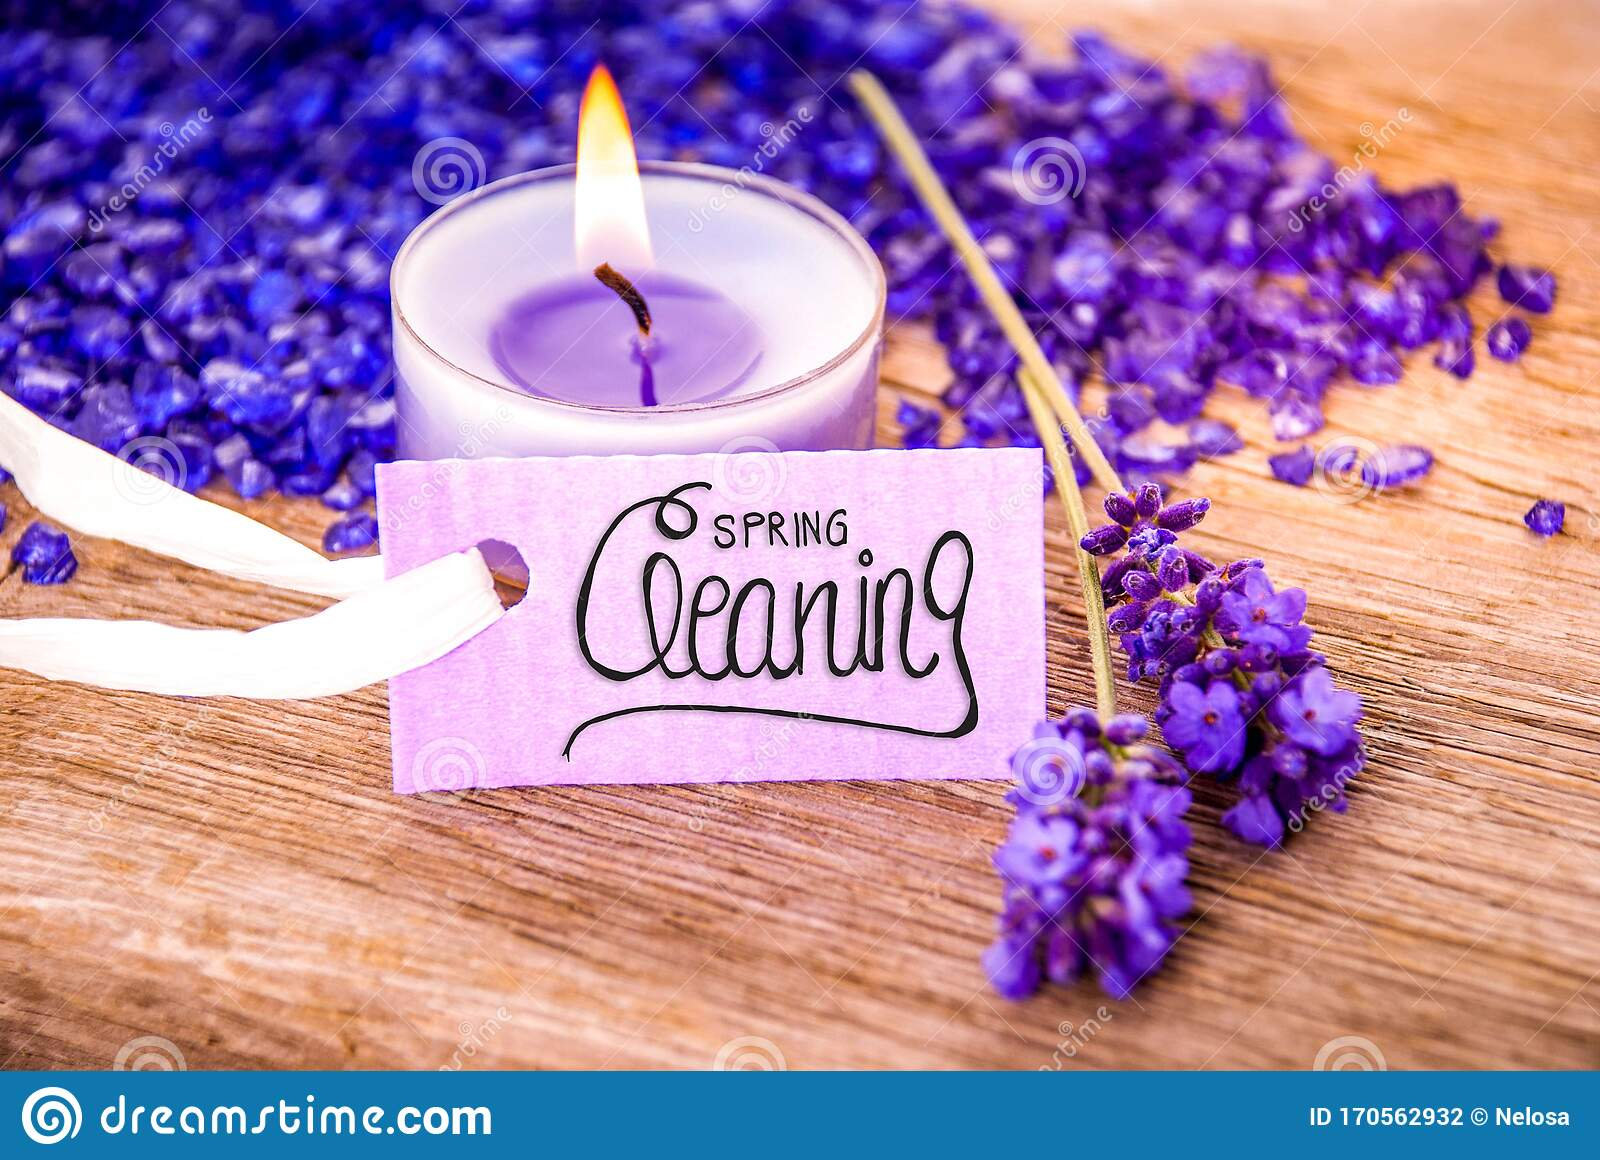 Spring Cleaning Kit - Candle Light Story